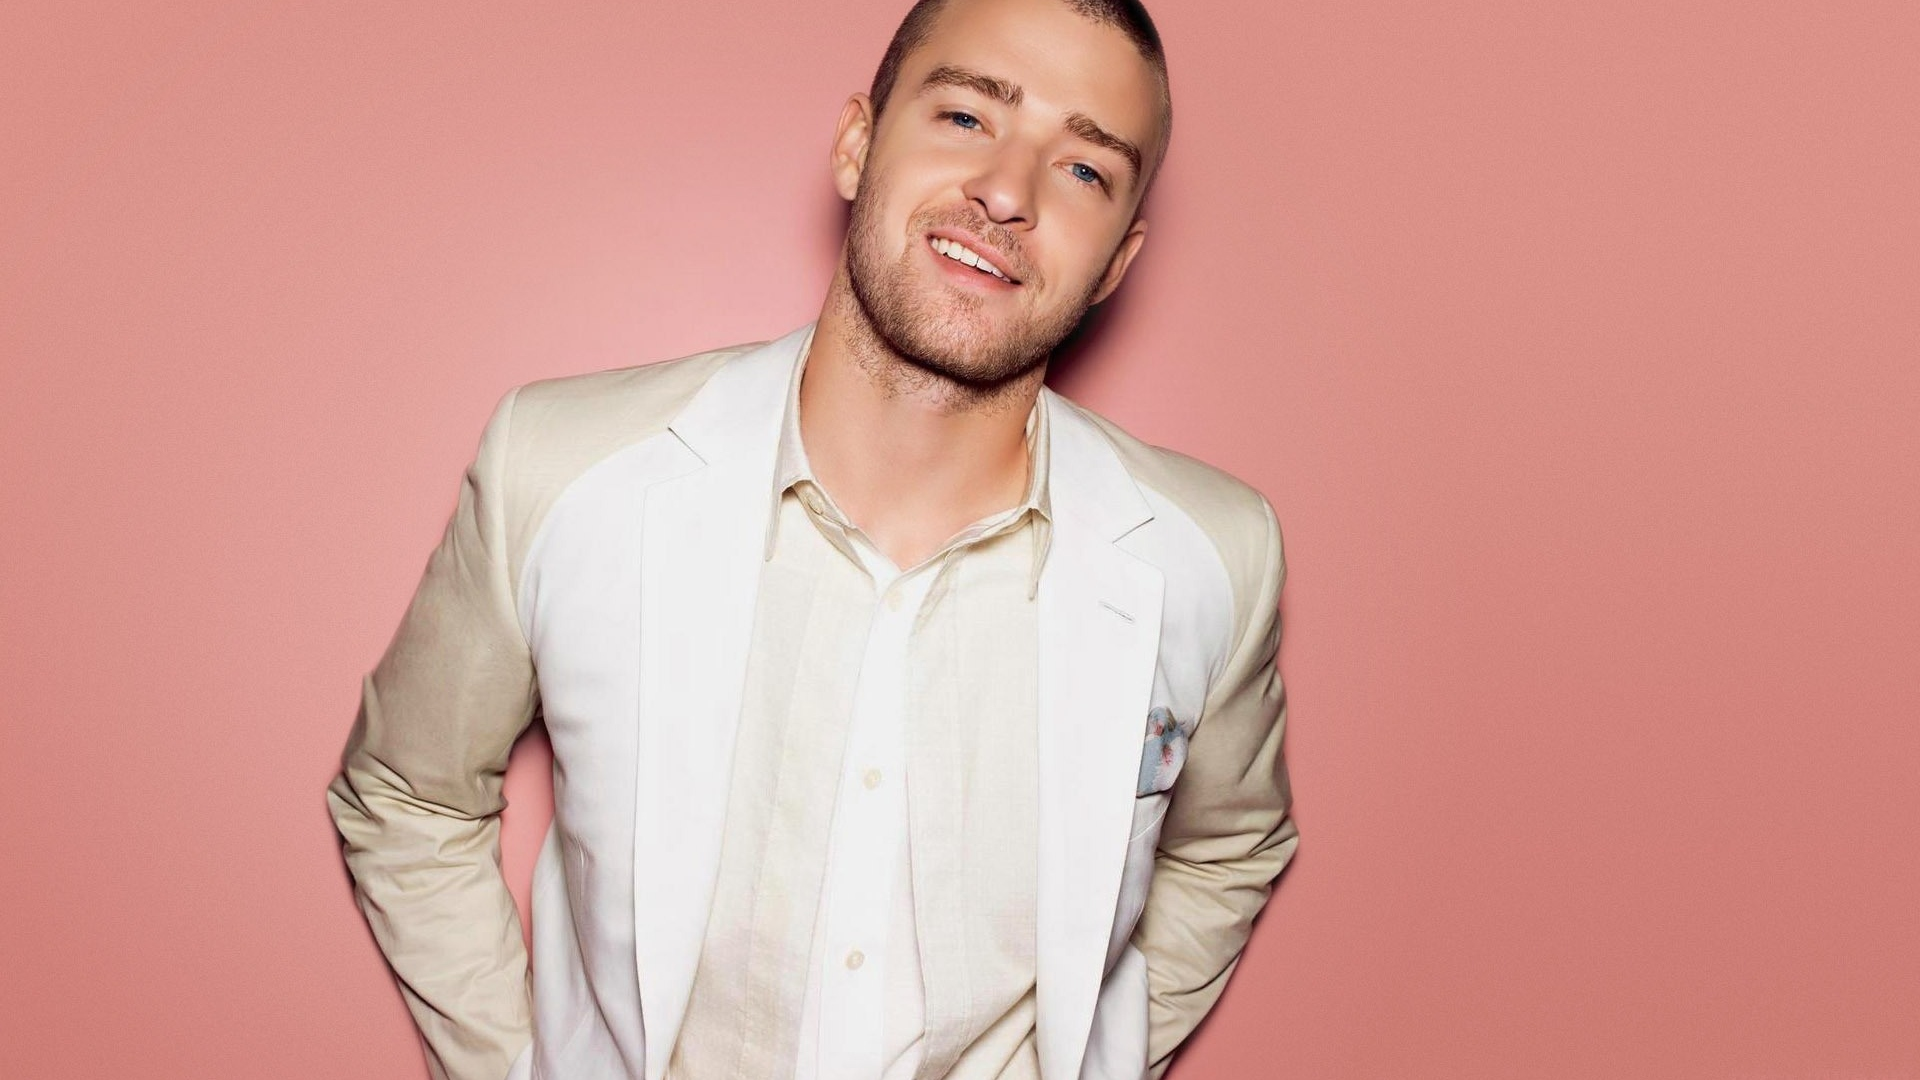 Please check our latest hd widescreen wallpaper below and bring beauty to your desktop. Justin Timberlake Wallpaper